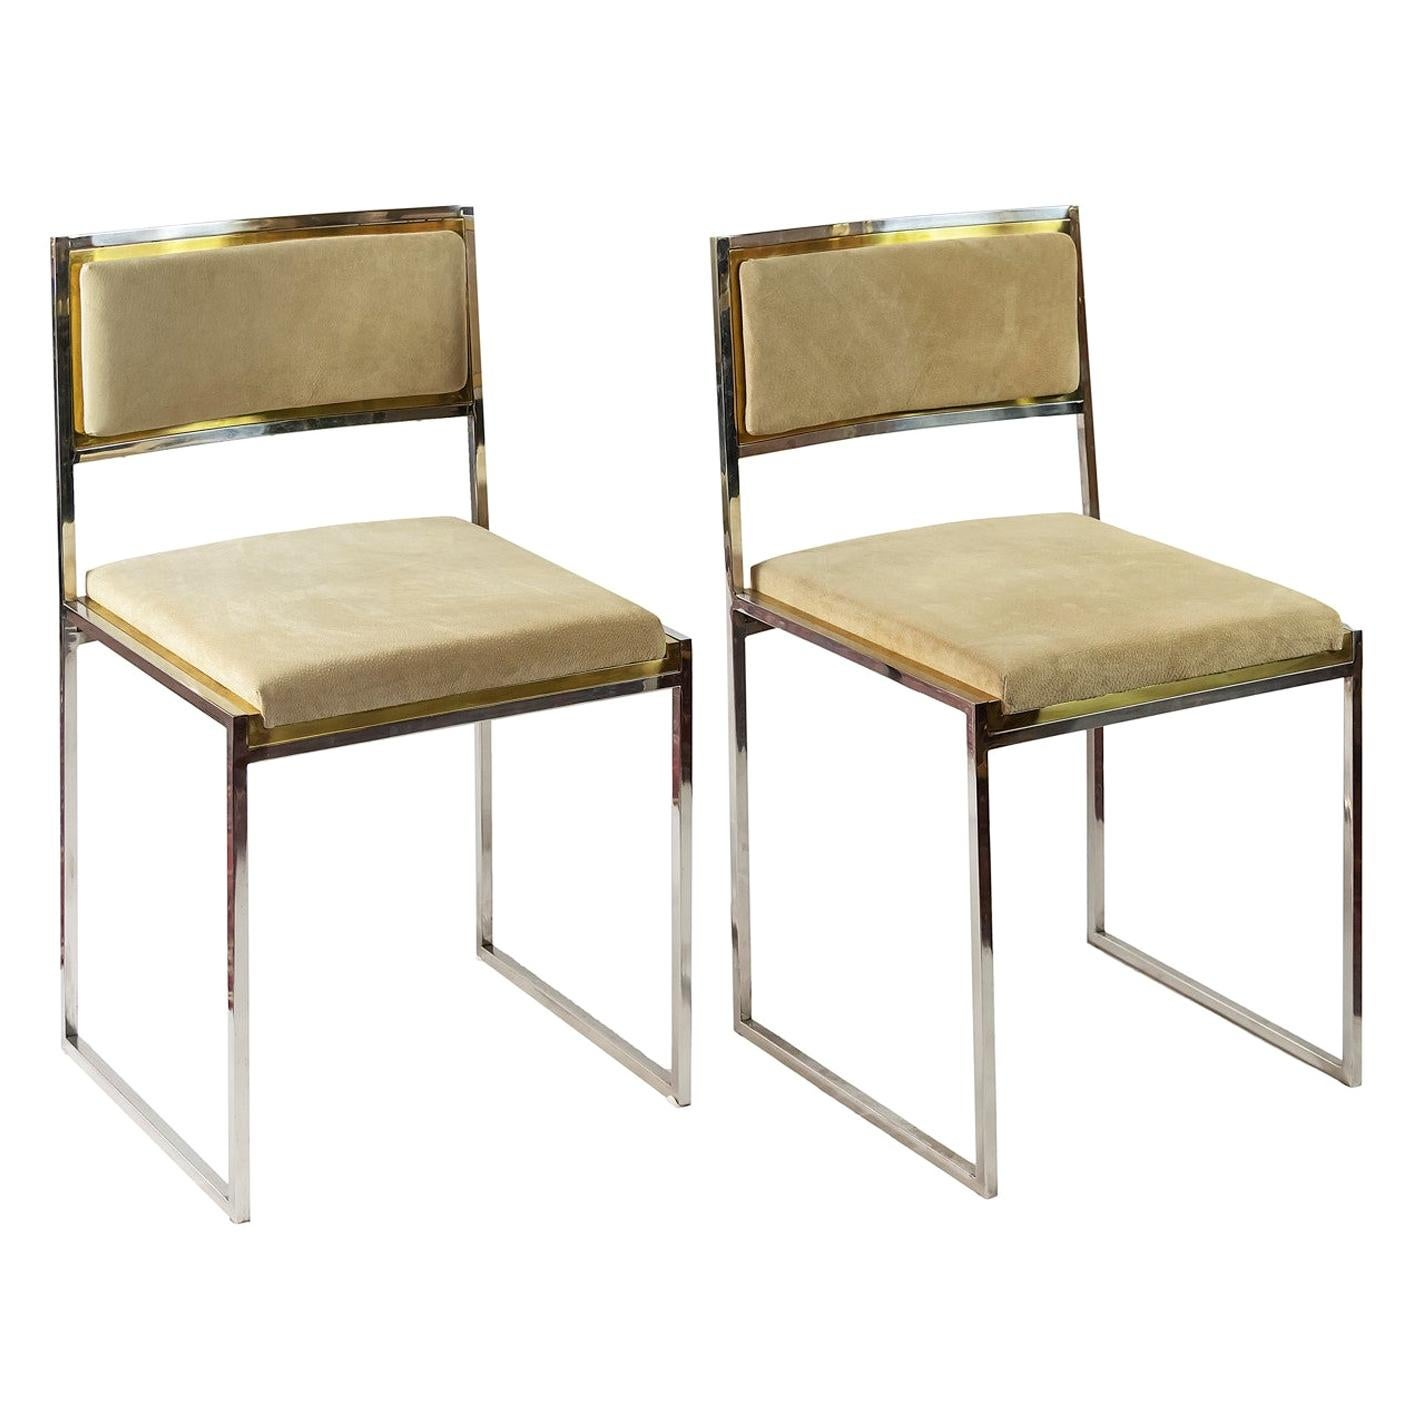 Pair of Midcentury Italian Brass and Suede Chairs by Willy Rizzo